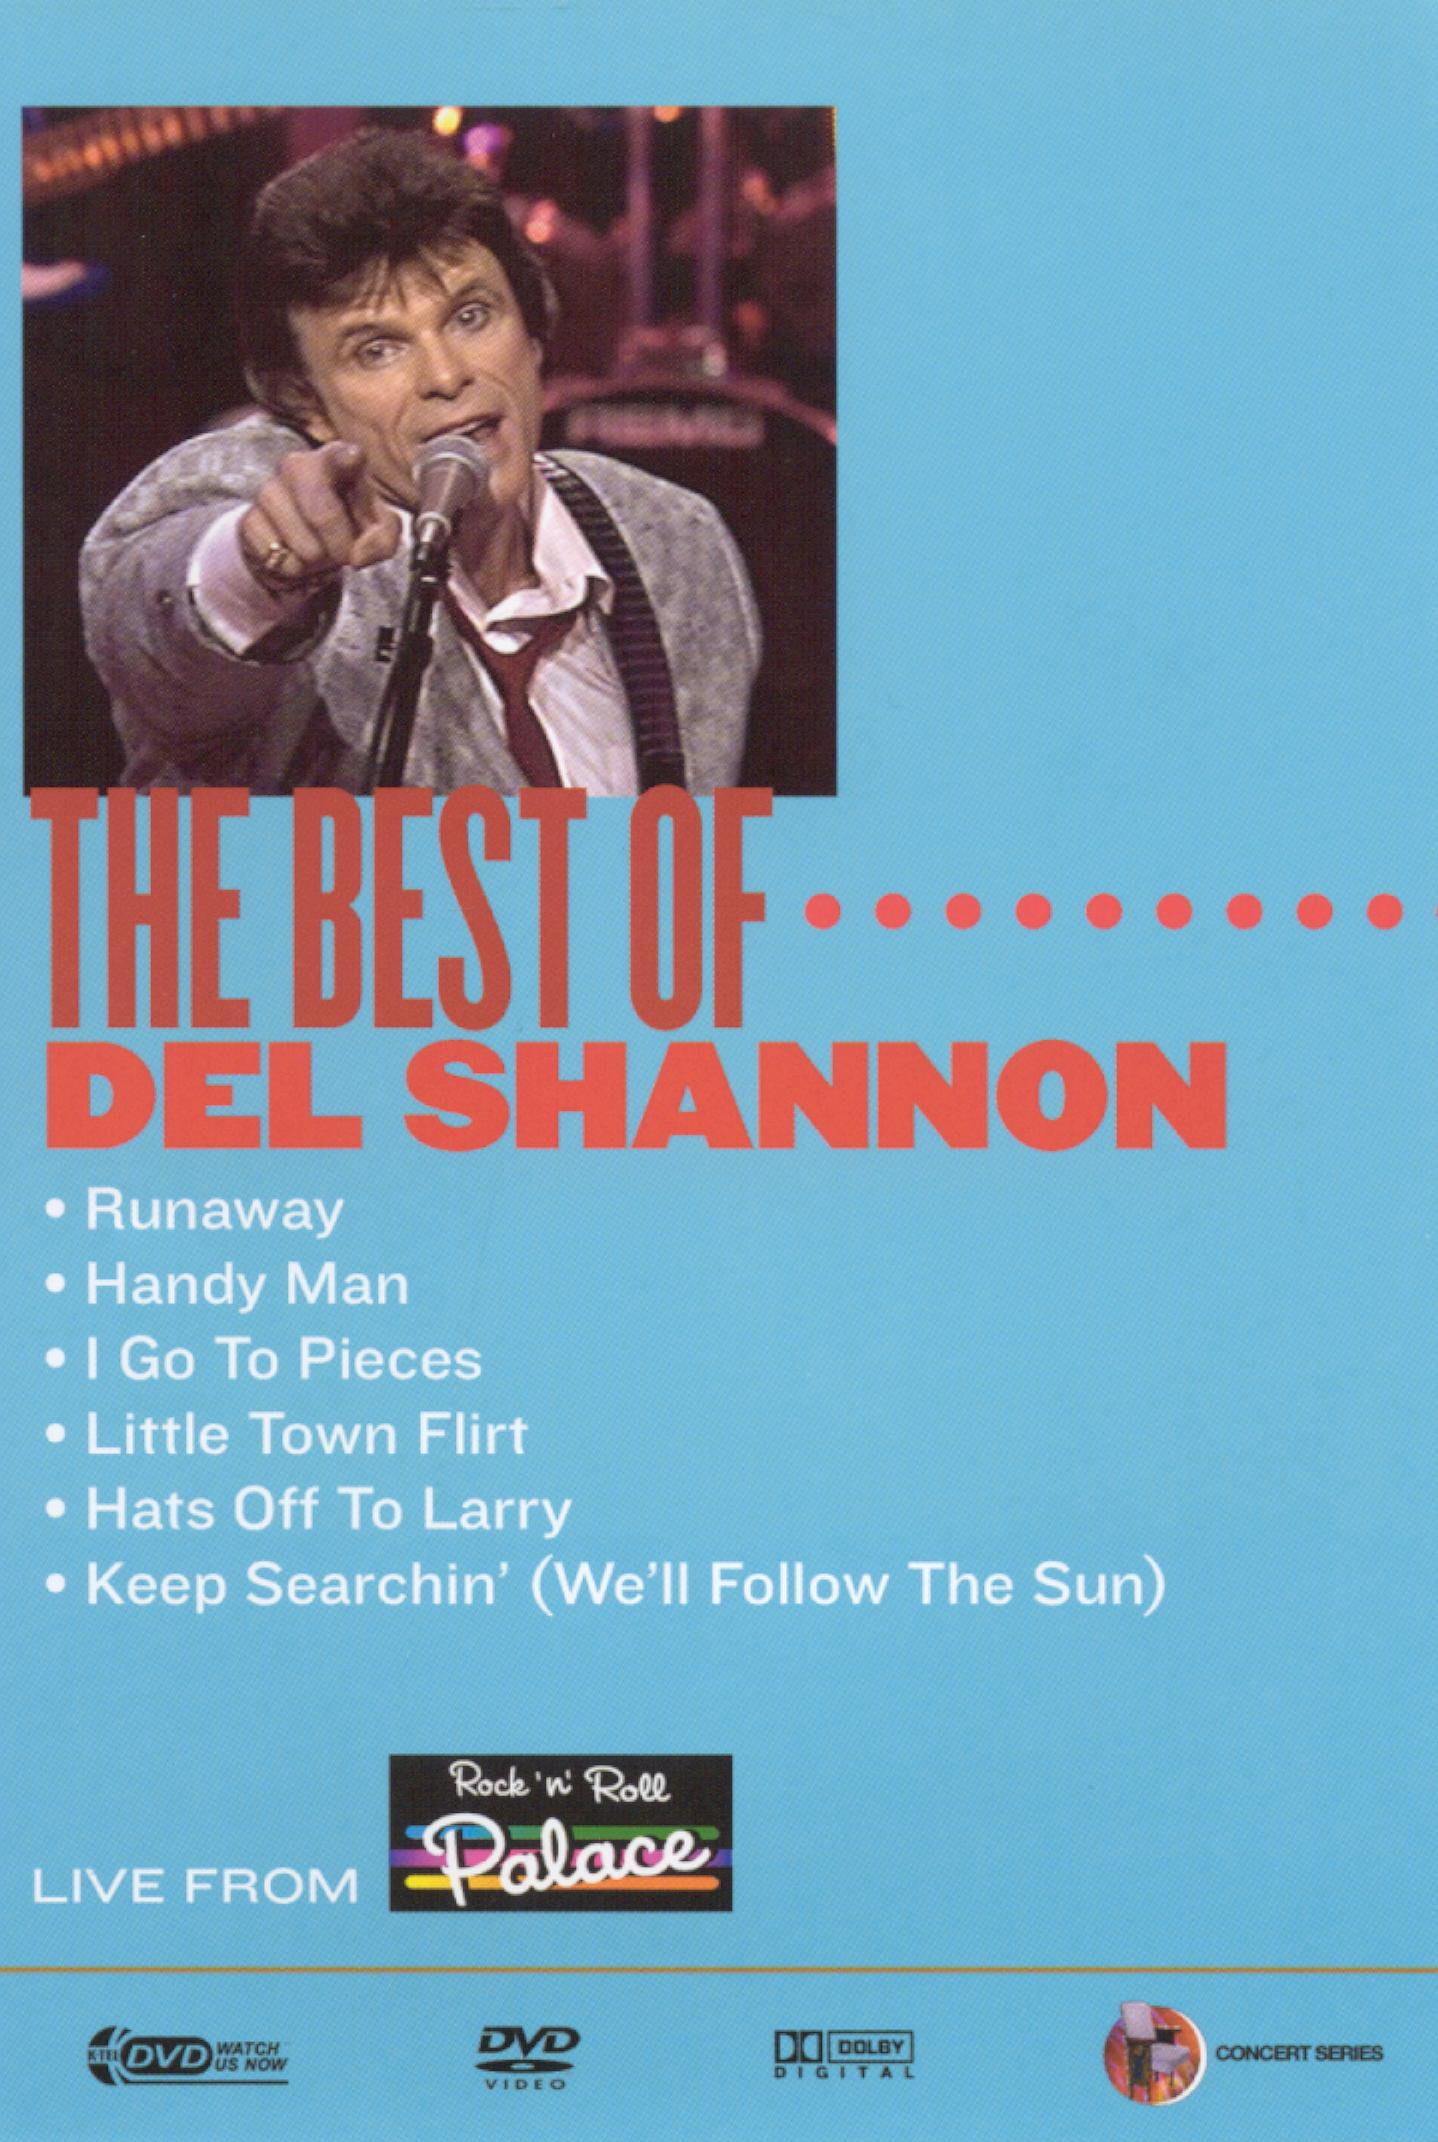 Live From Rock 'n' Roll Palace: The Best of Del Shannon